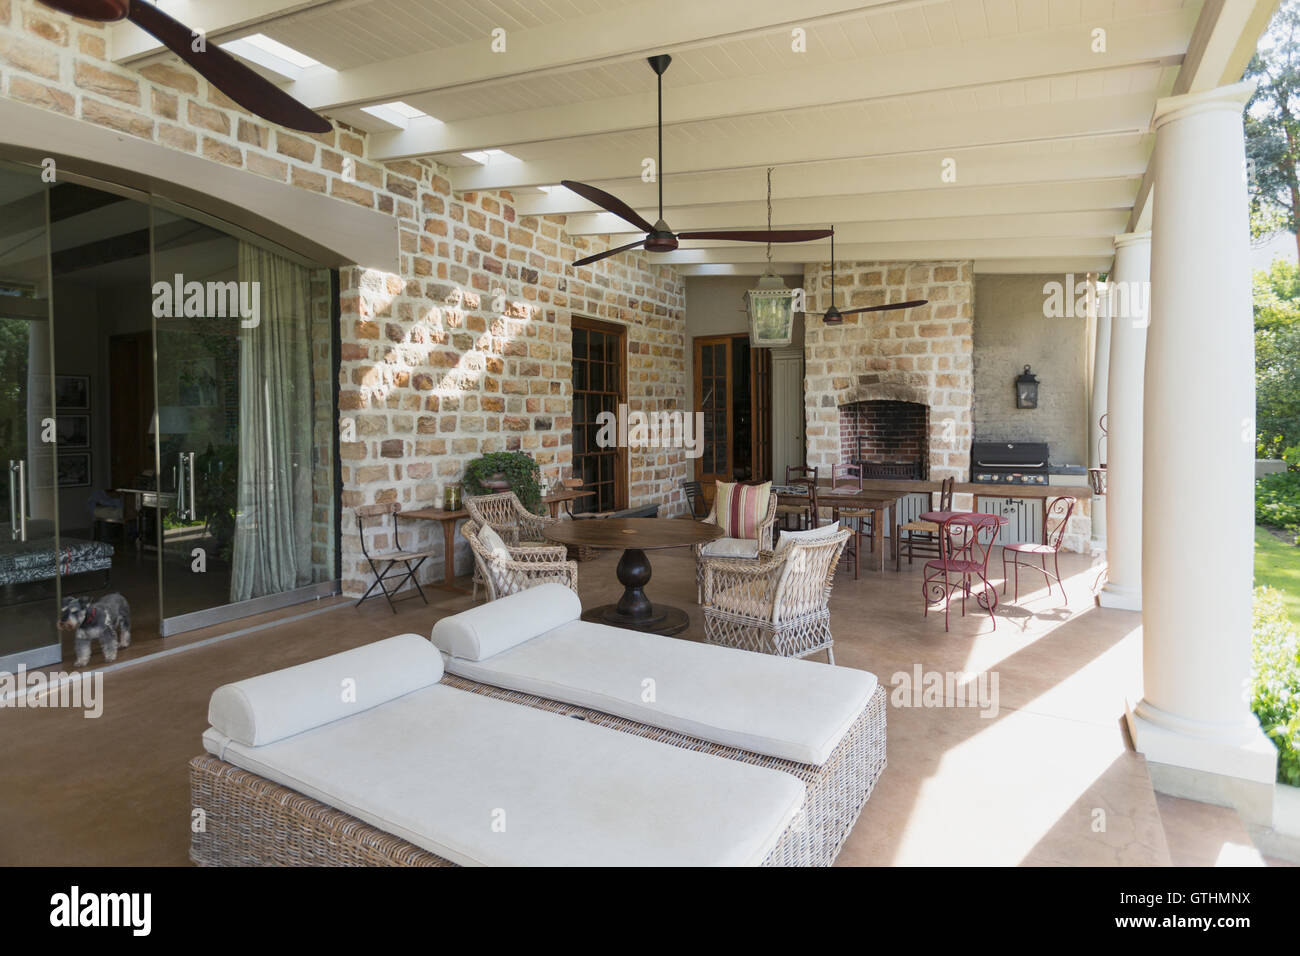 https www alamy com stock photo luxury home showcase patio with stone wall and ceiling fans 118403430 html